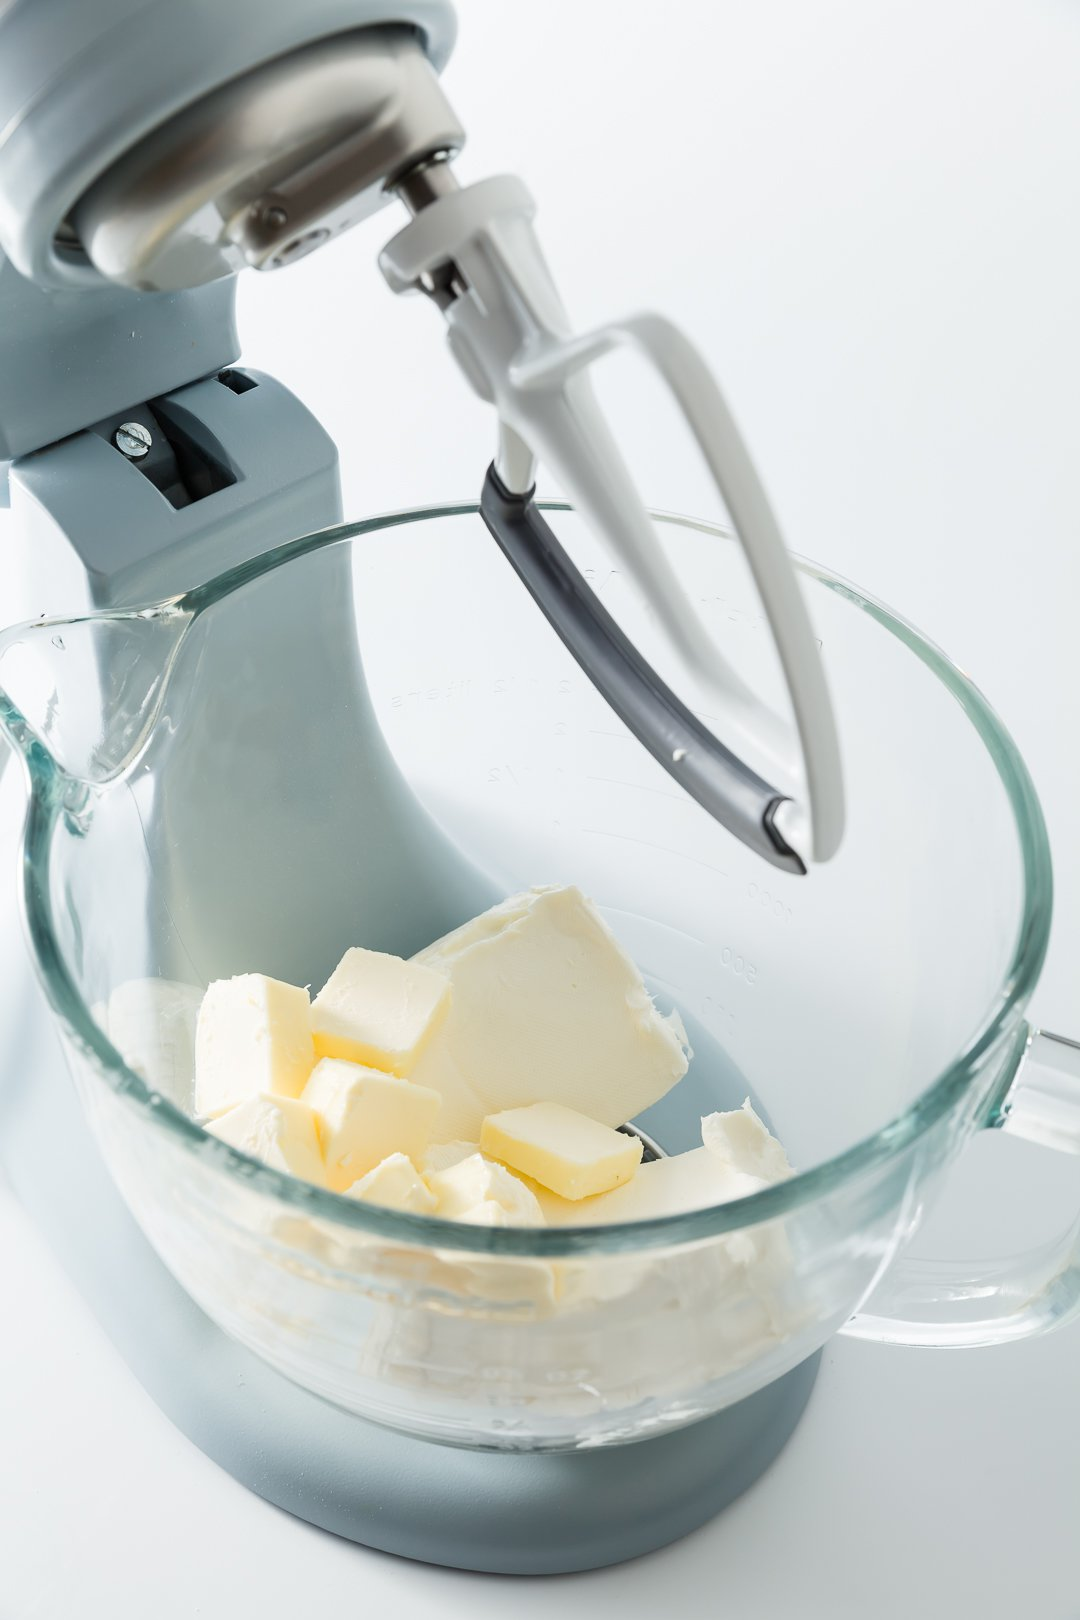 Butter and cream cheese in a kitchenaid mixer